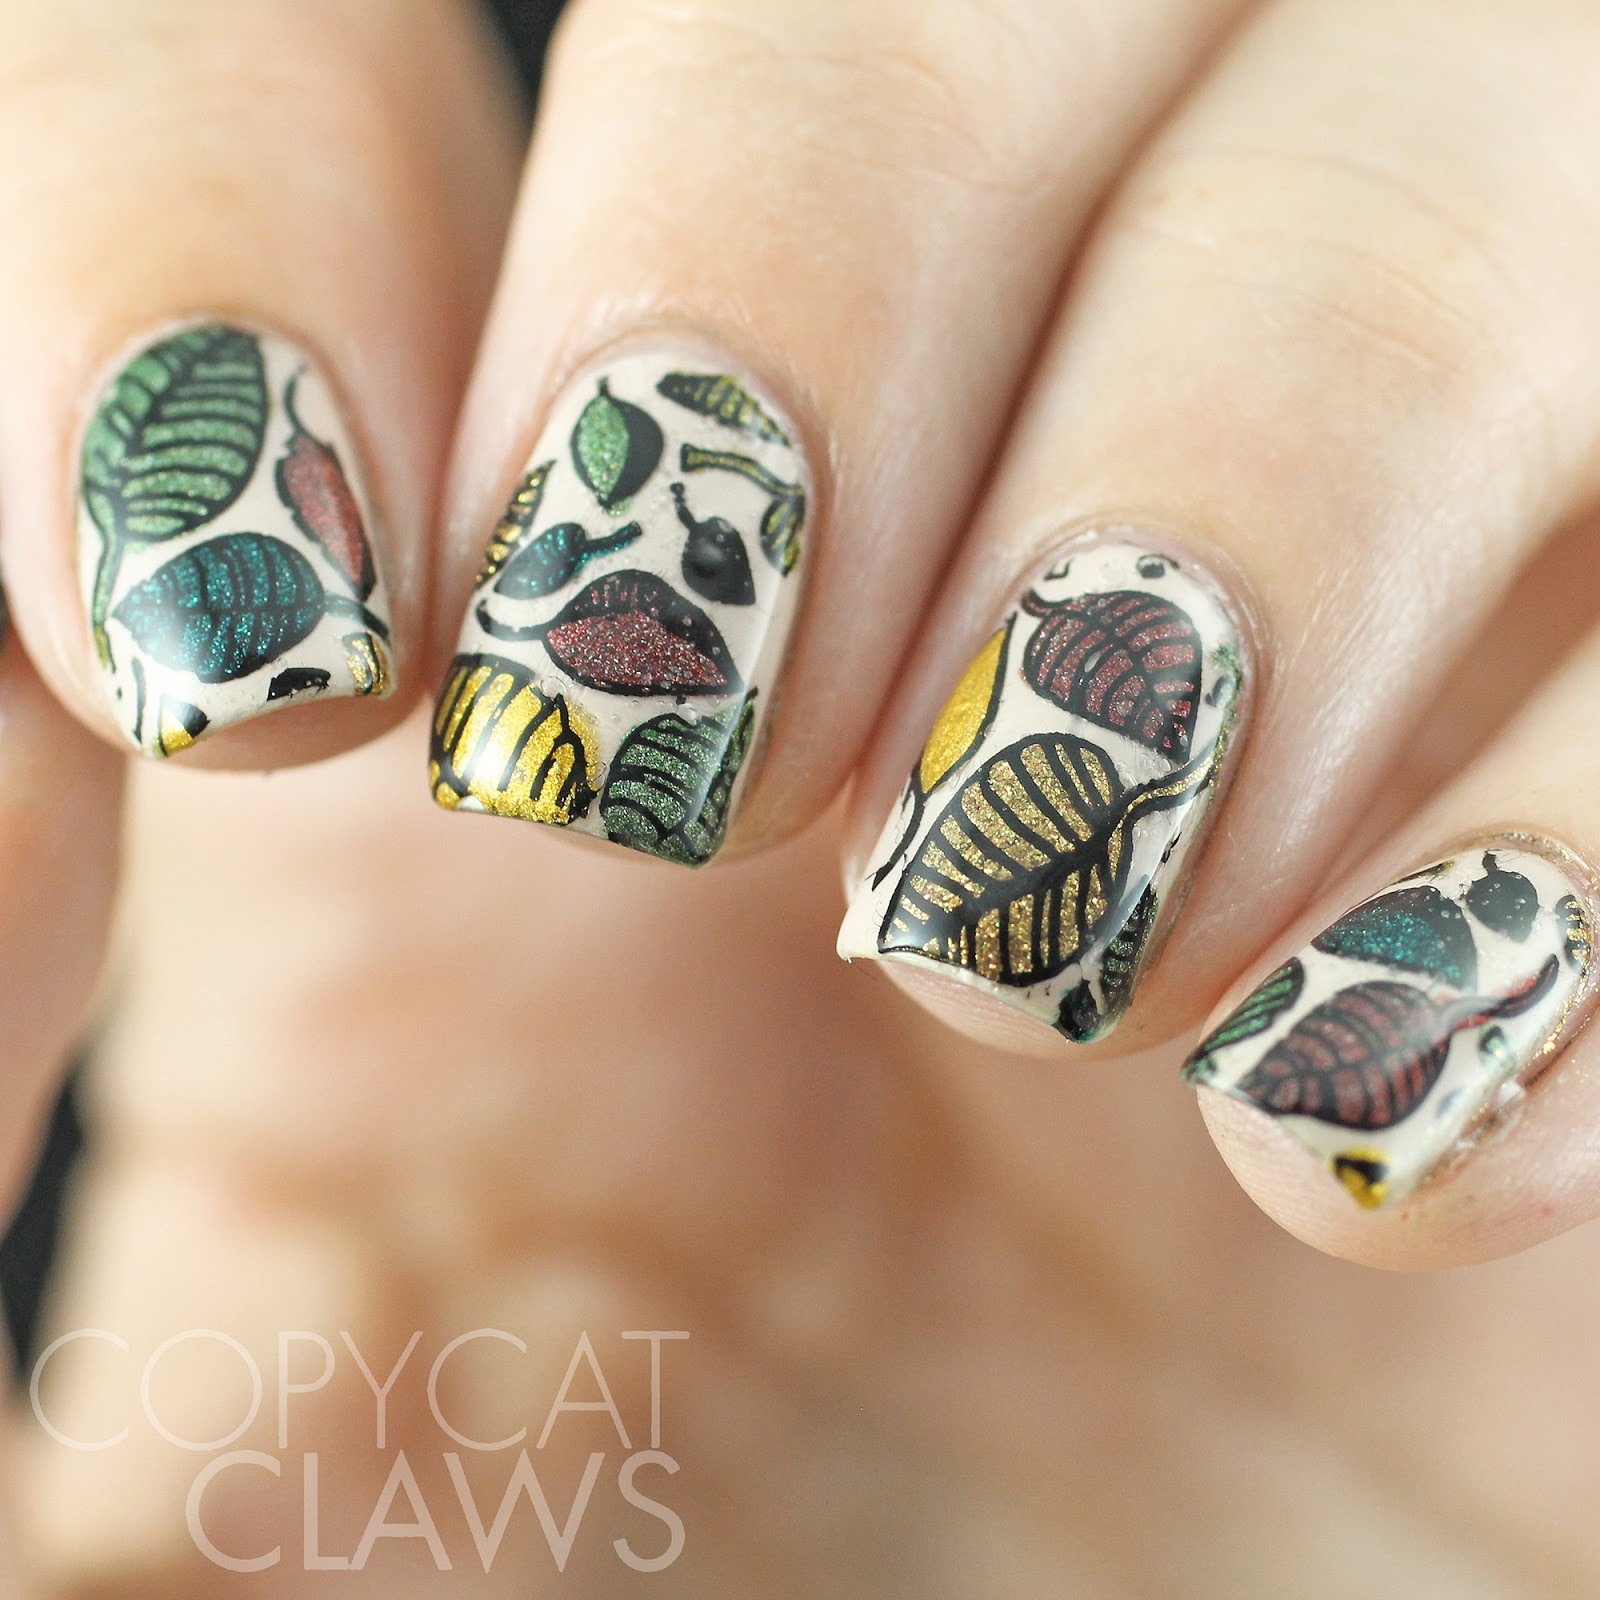 Copycat Claws: Autumn Leaves Stamping Decals